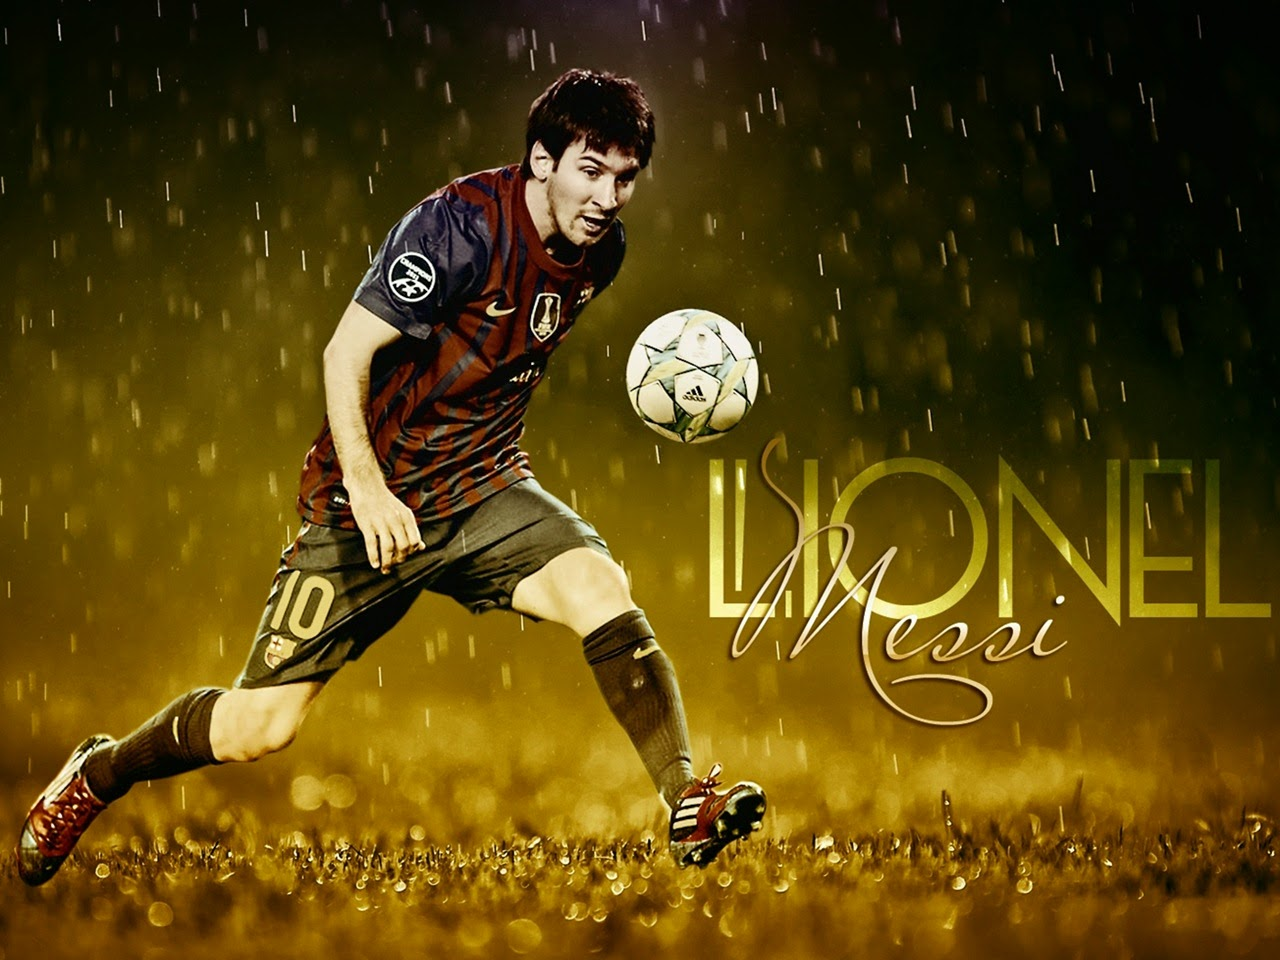 lionel_messi_hd_soccer_wallpaper-webstudy.pk